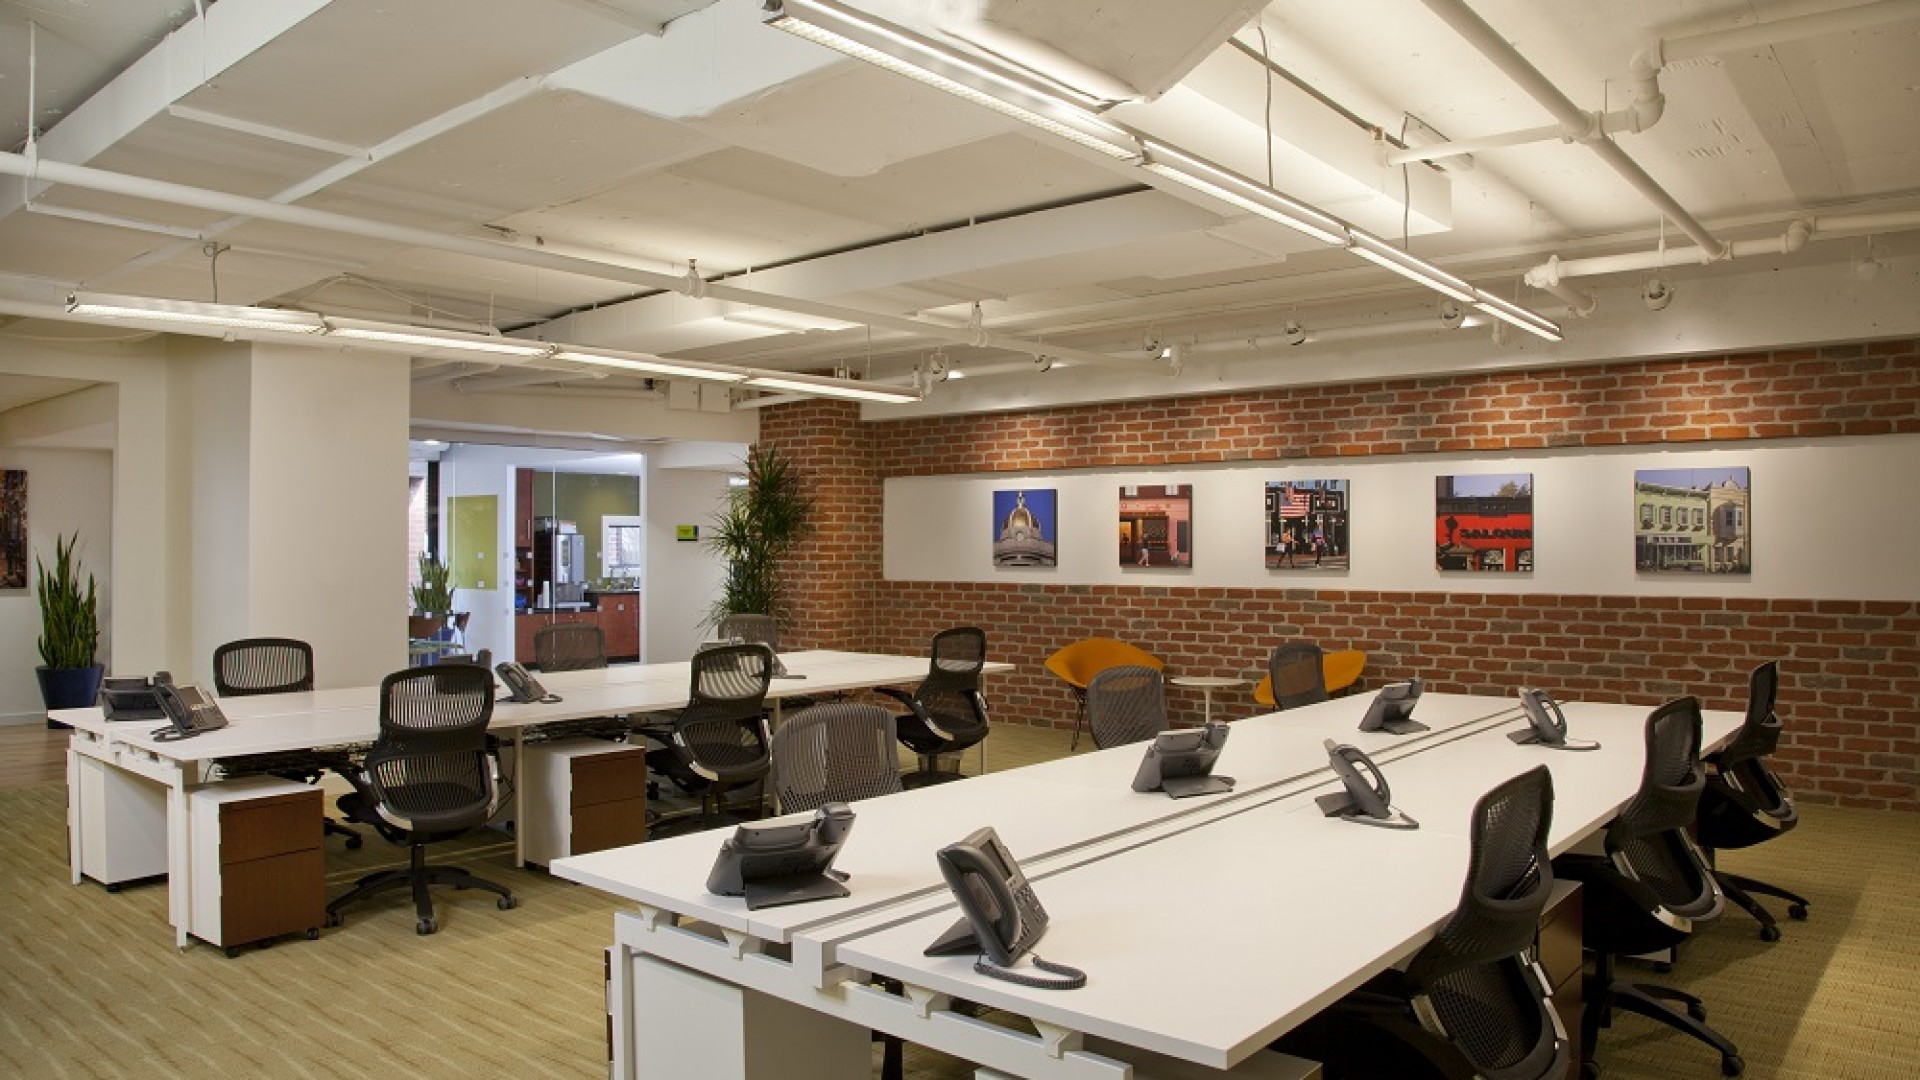 carr workplaces georgetown coworking and shared office space washington. Black Bedroom Furniture Sets. Home Design Ideas